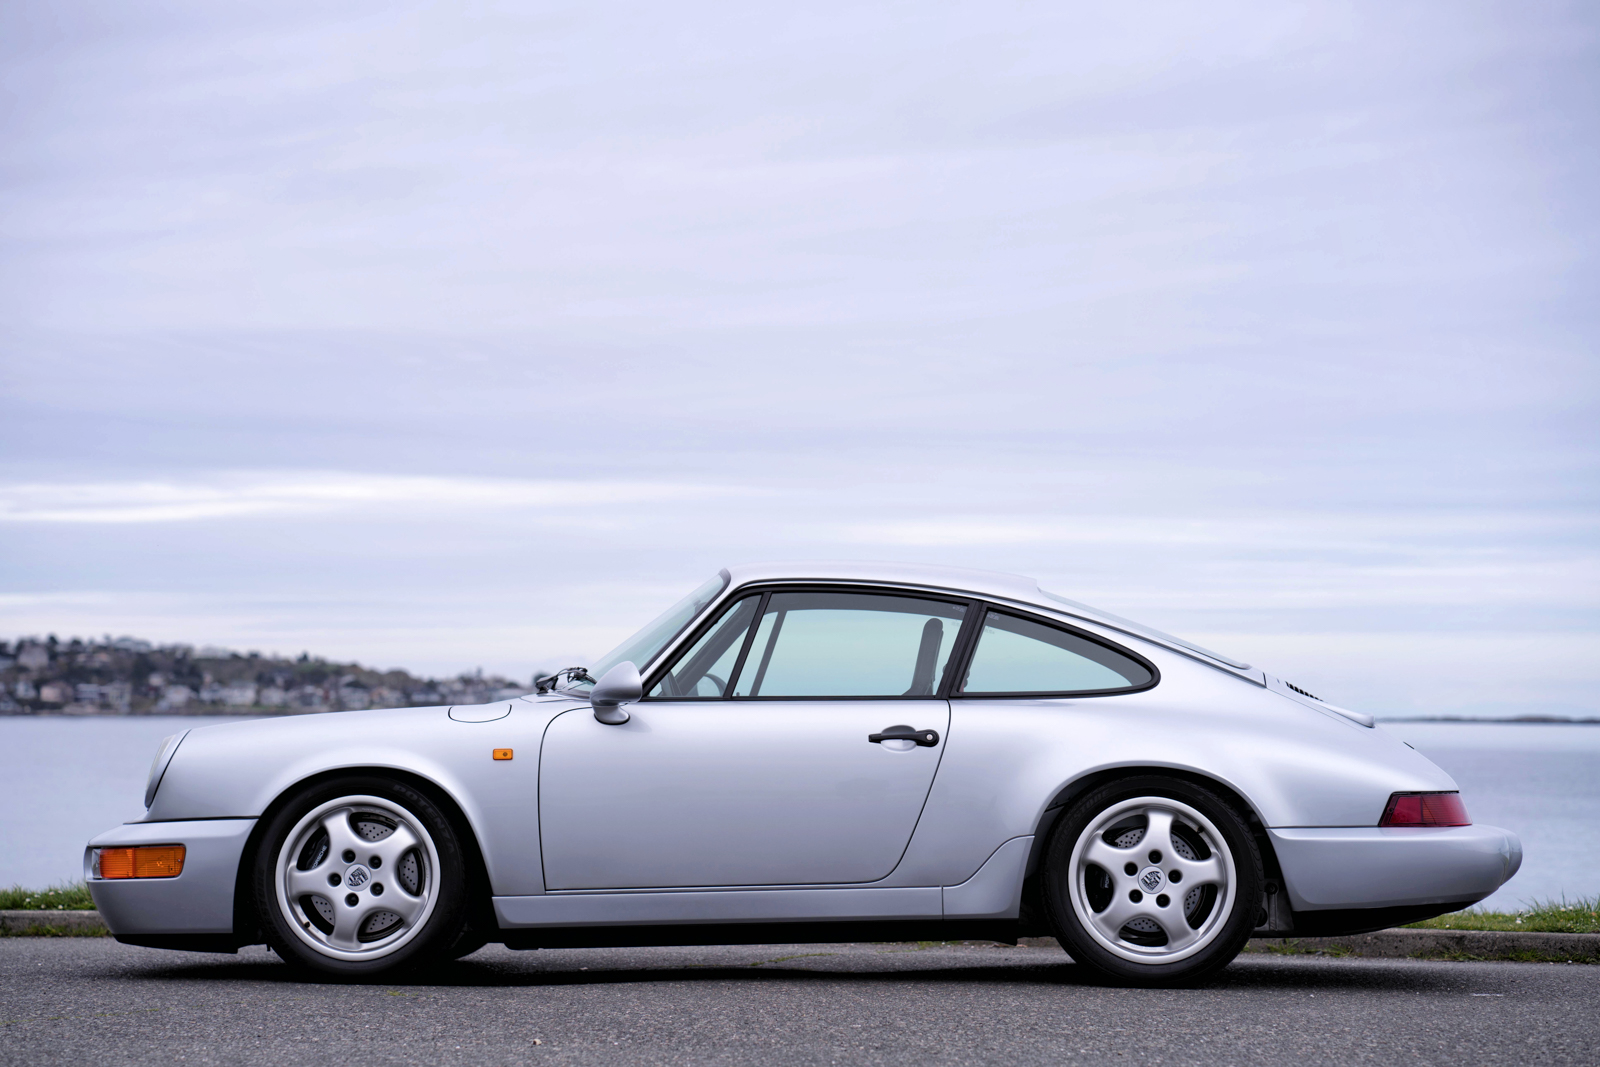 1992 porsche 964 carrera rs m001 for sale silver arrow cars ltd. Black Bedroom Furniture Sets. Home Design Ideas